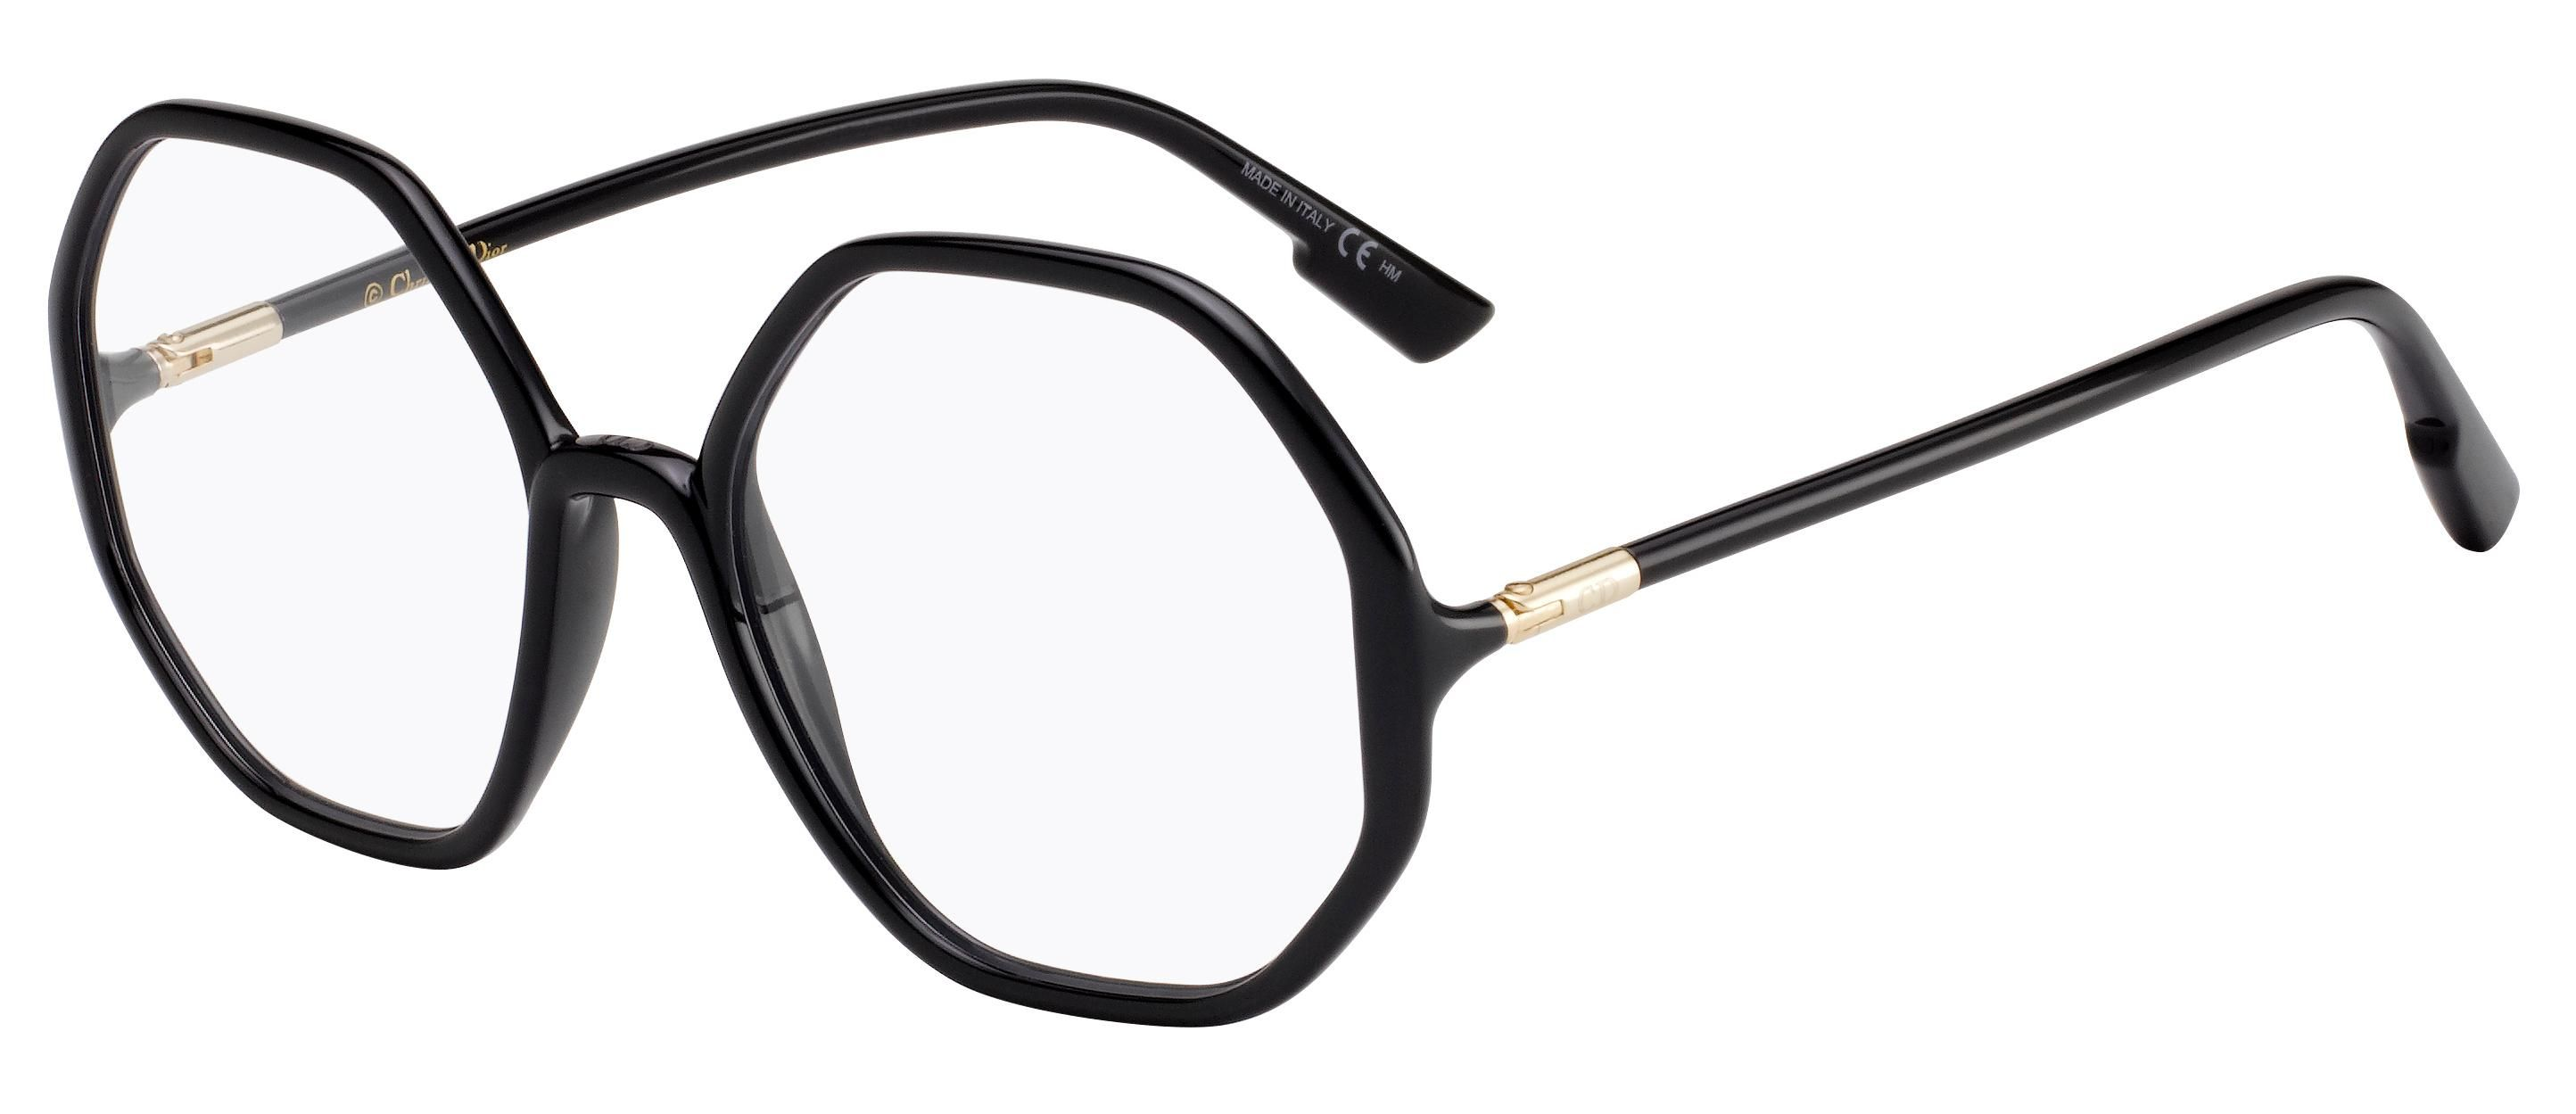 Dior sostellaireo5 807